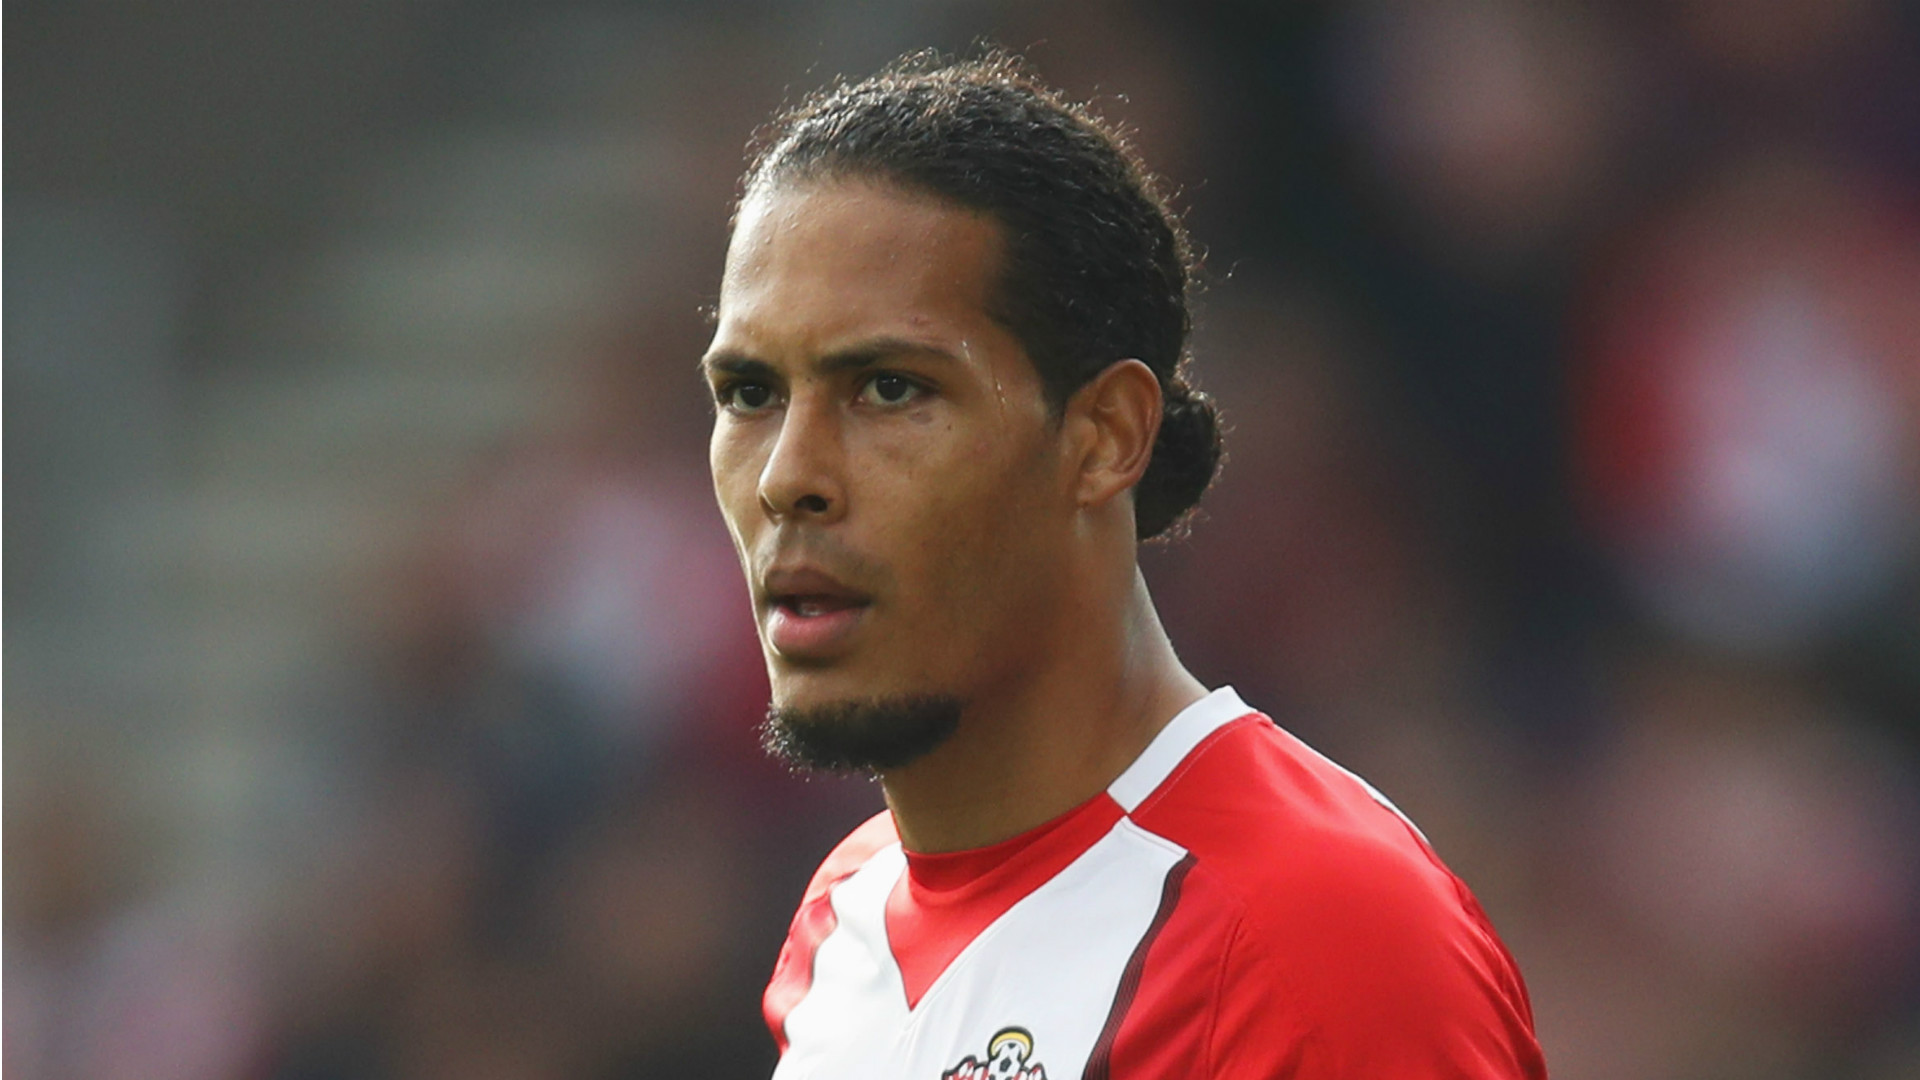 Liverpool saga in the past, says Van Dijk